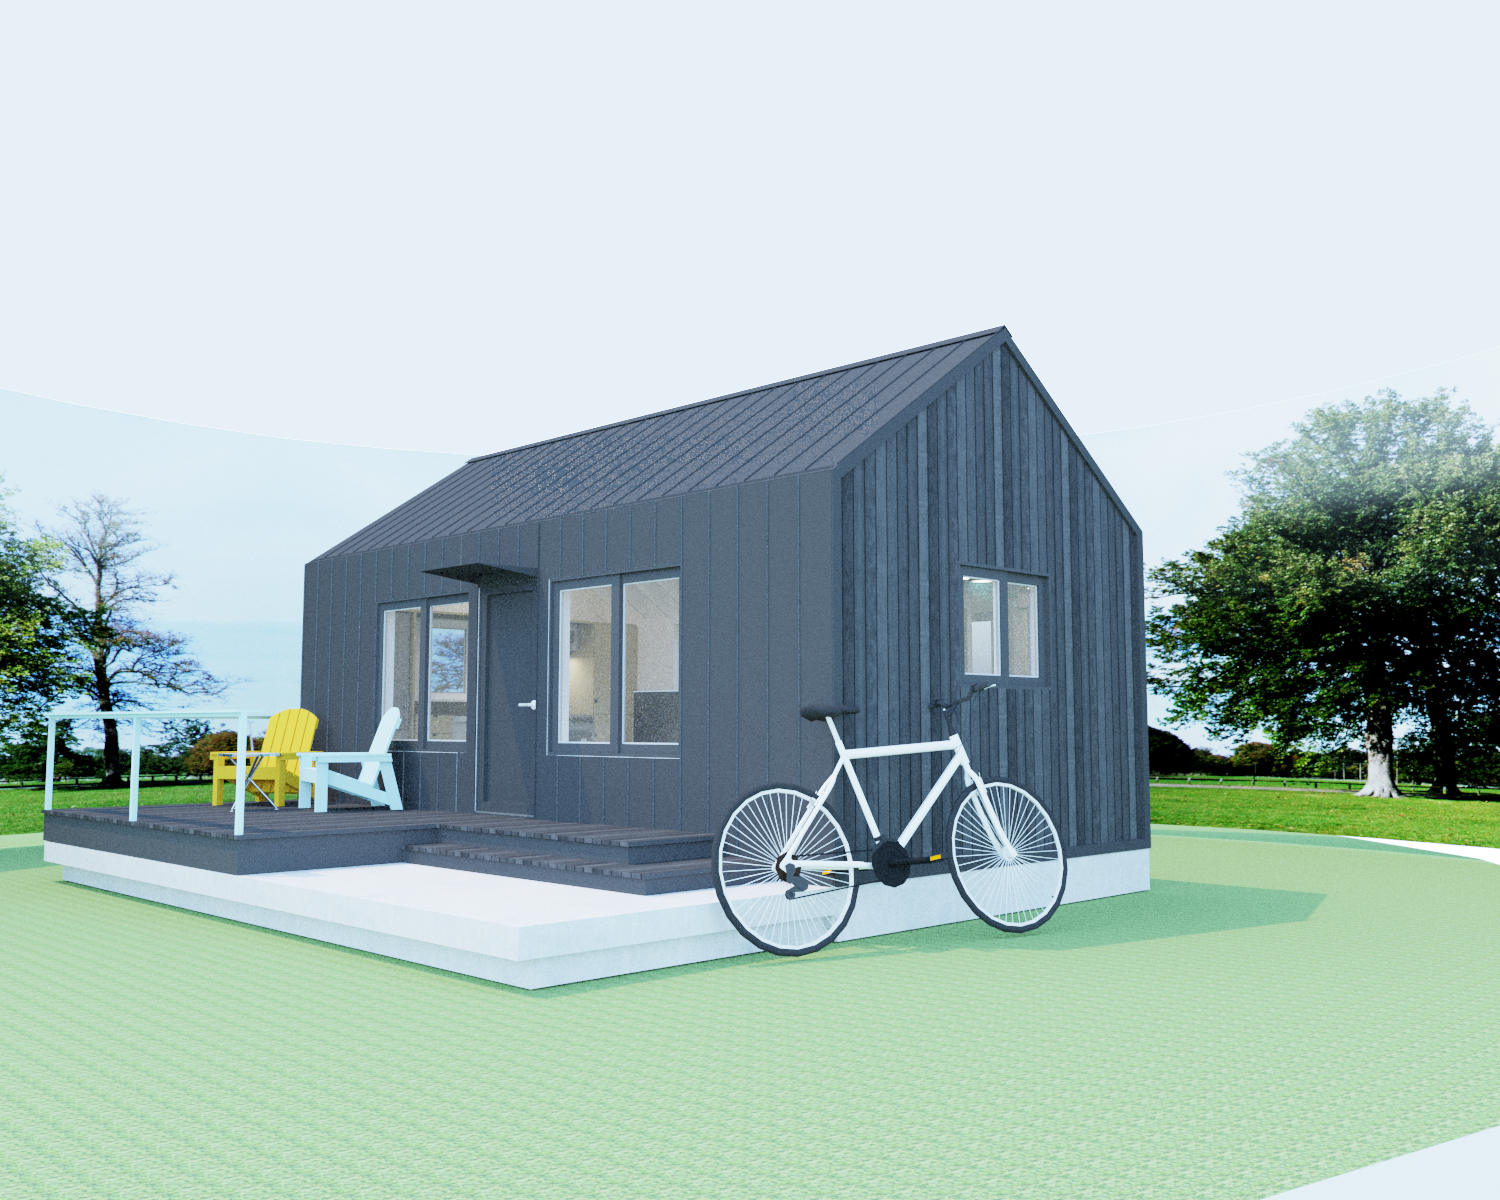 tiny house exterior 2.png